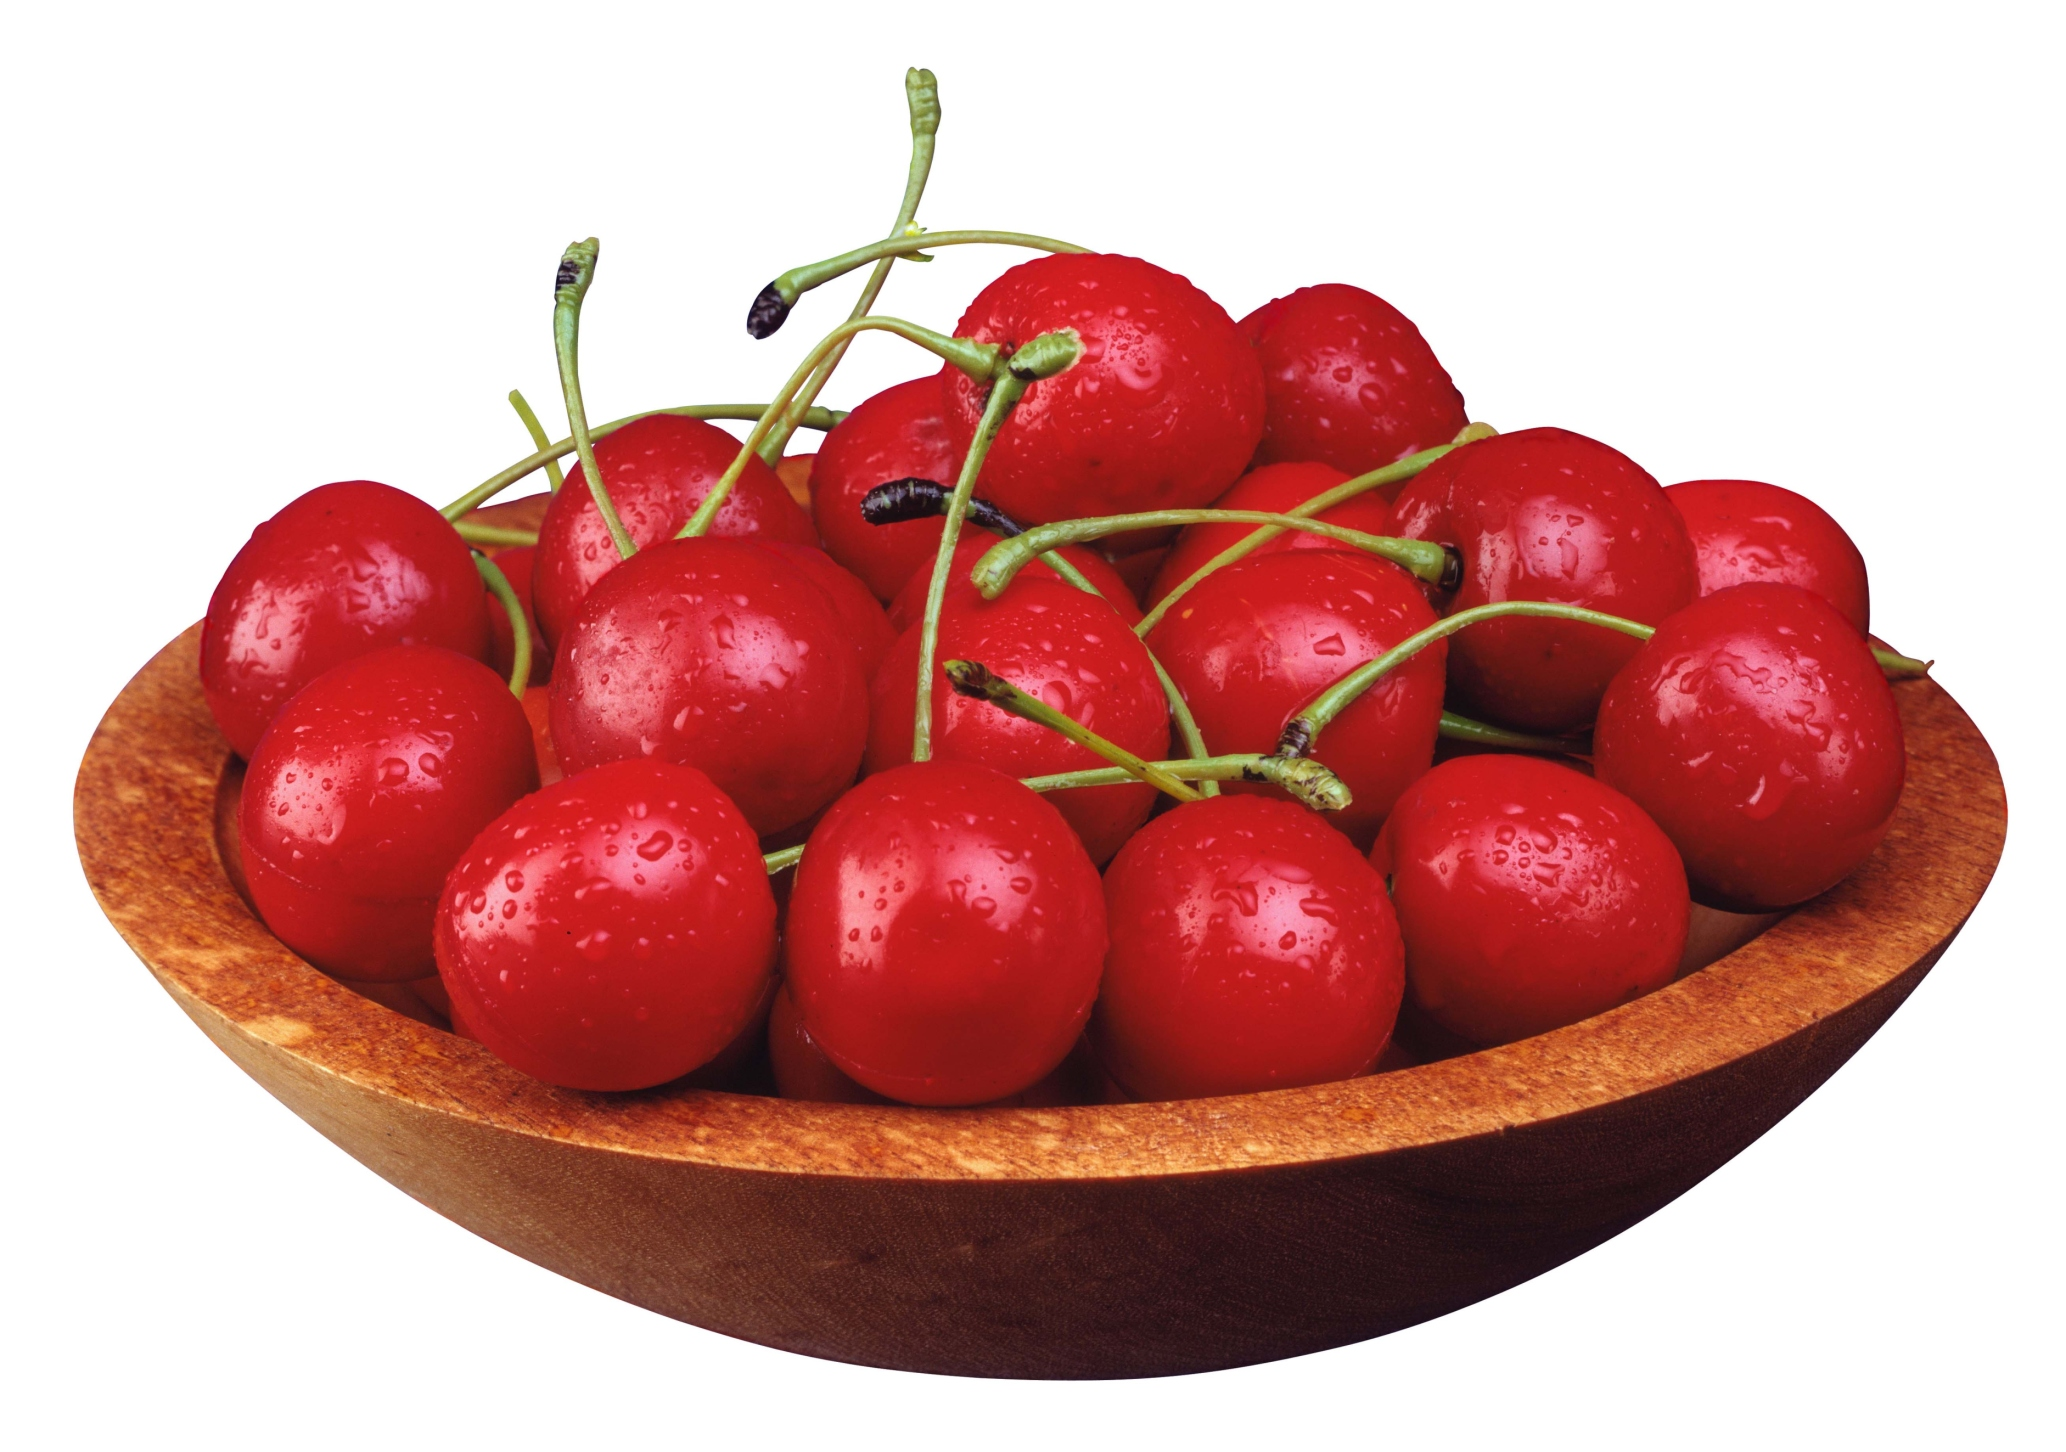 How To Prepare Cherry Pits For Planting Germination Home Guides